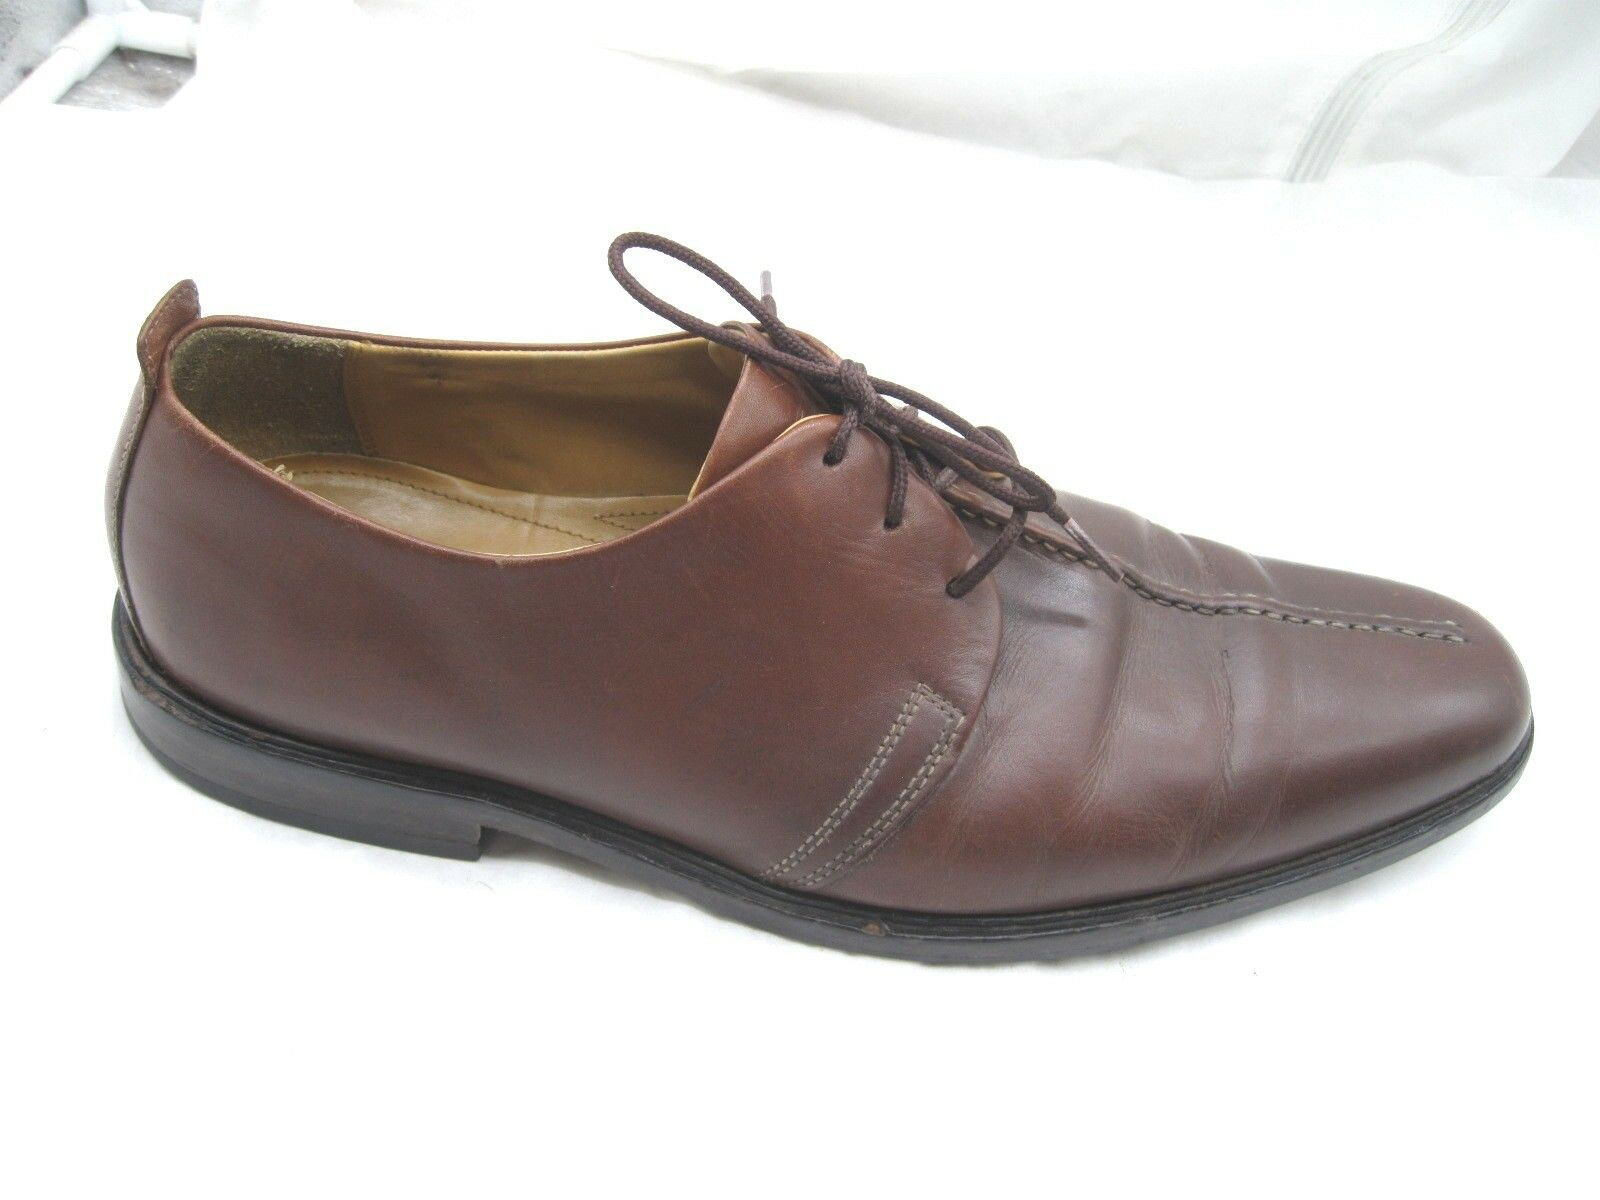 Cole Haan brown leather split toe oxfords Mens dress formal shoes sz 12M C06400